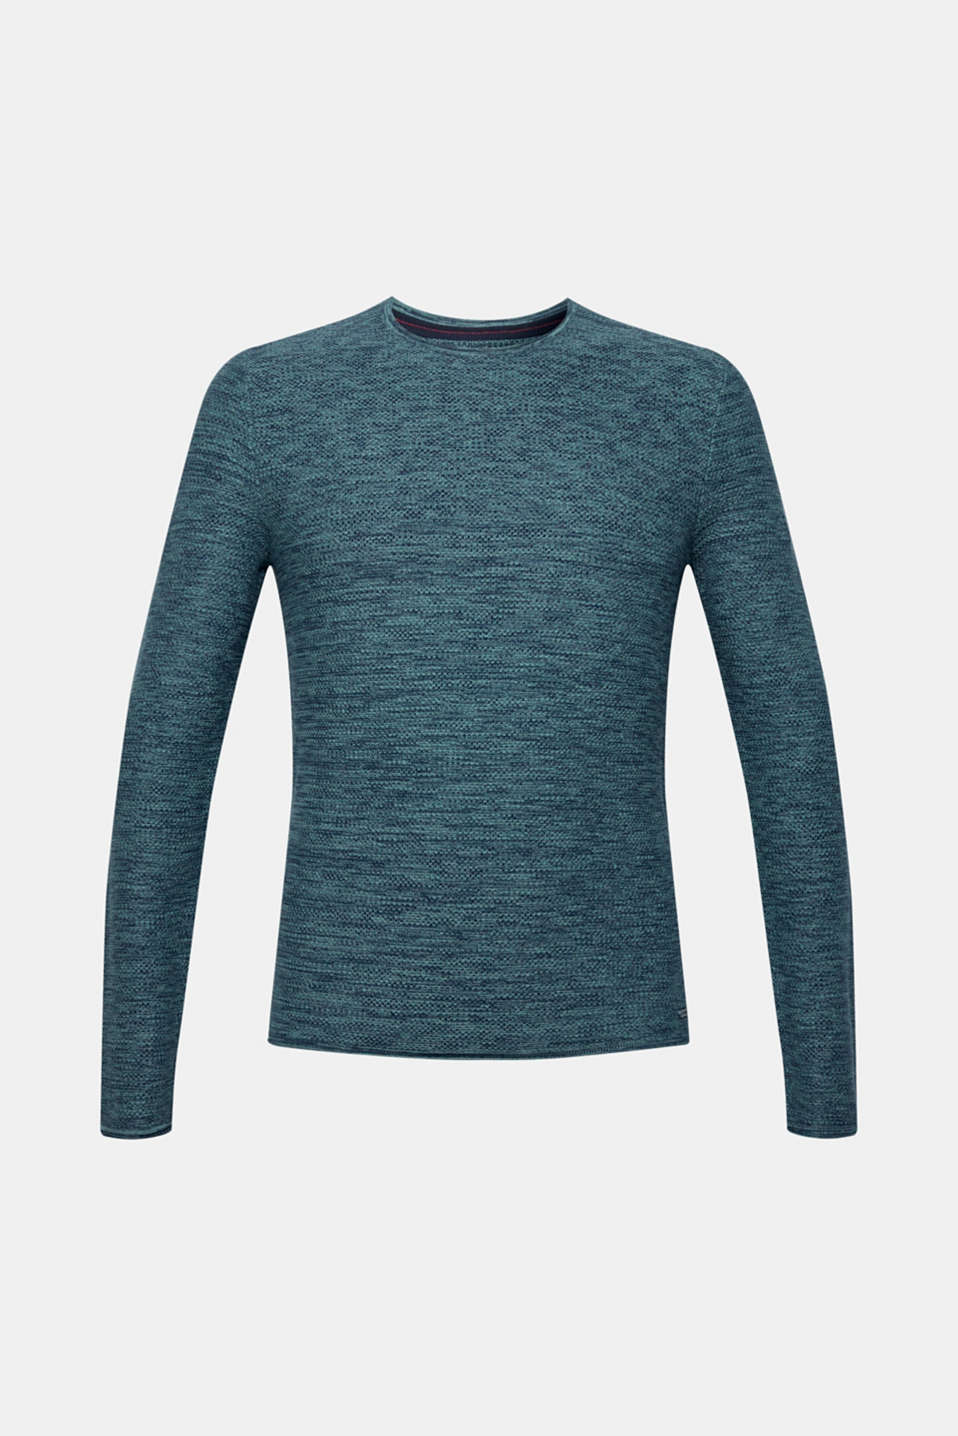 This essential piece is a must for every wardrobe: Textured knit jumper, 100% cotton.